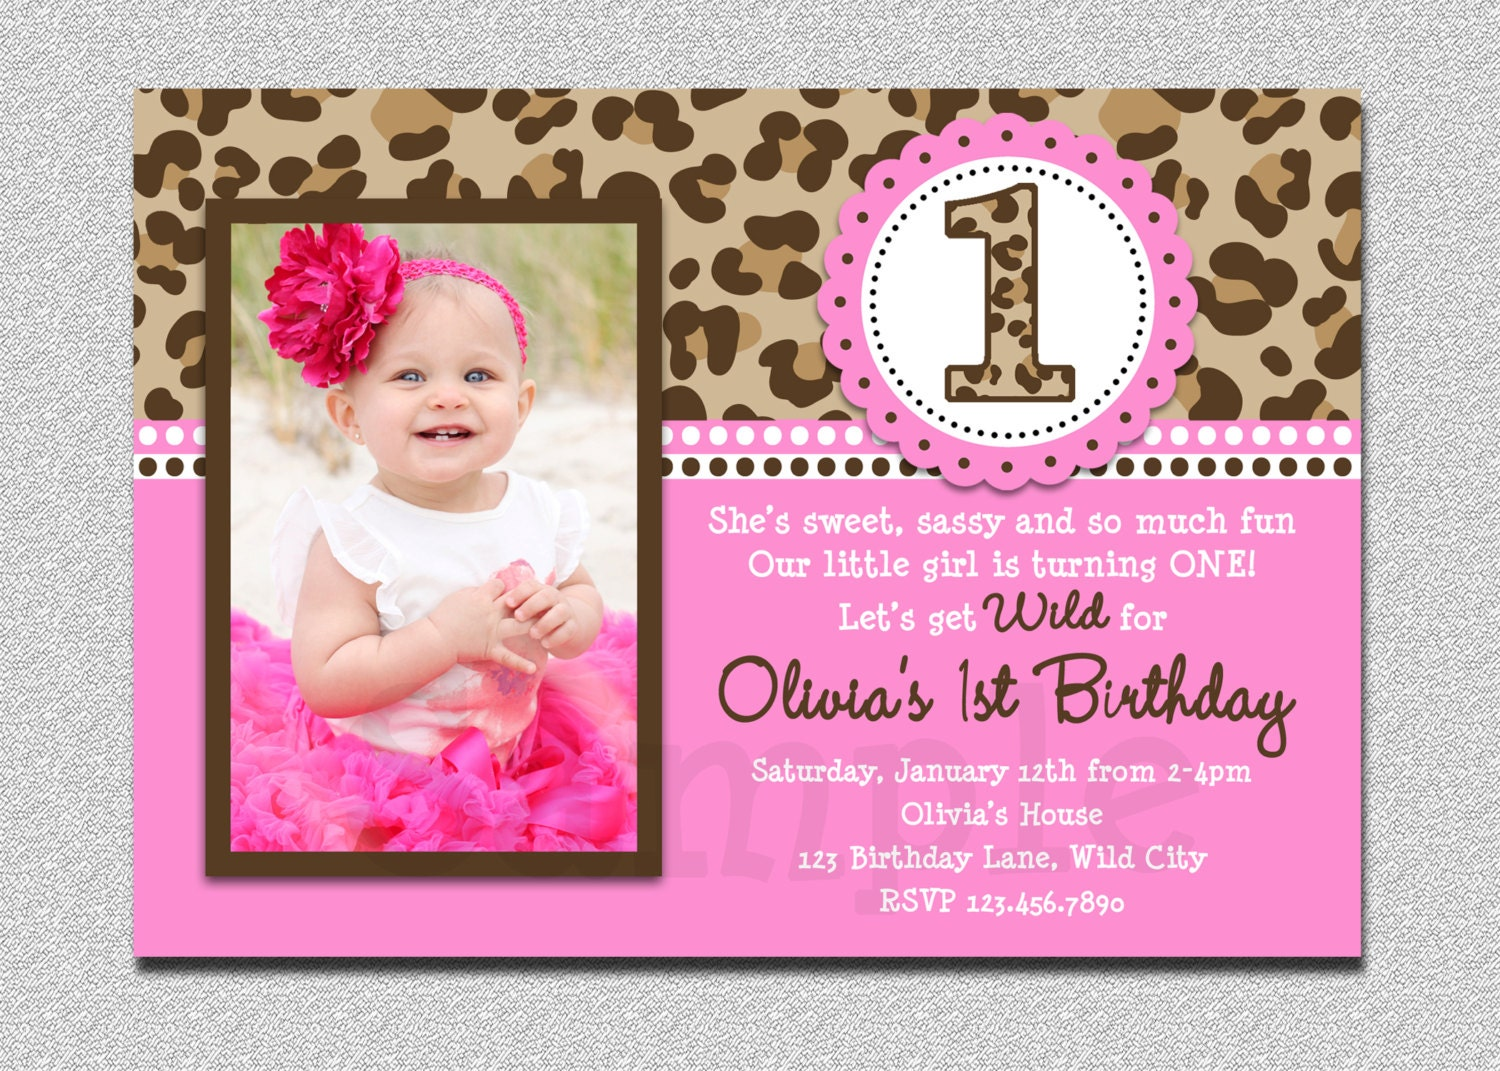 1St Birthday Invites is the best ideas you have to choose for invitation example